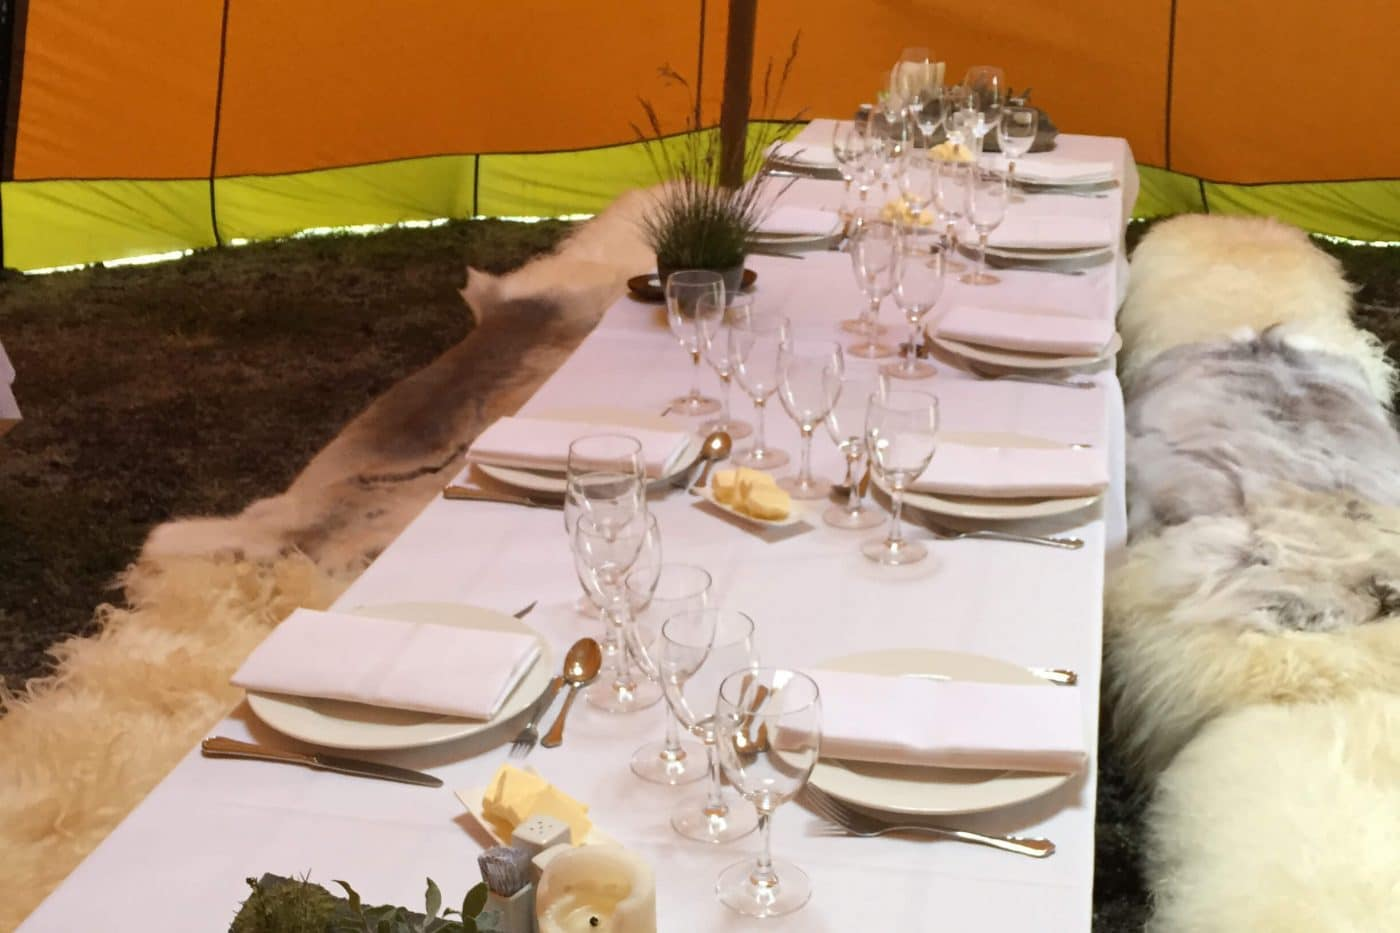 Set table ready for dinner a comfortable tent. Photo by Arctic Nomad, Visit Greenland